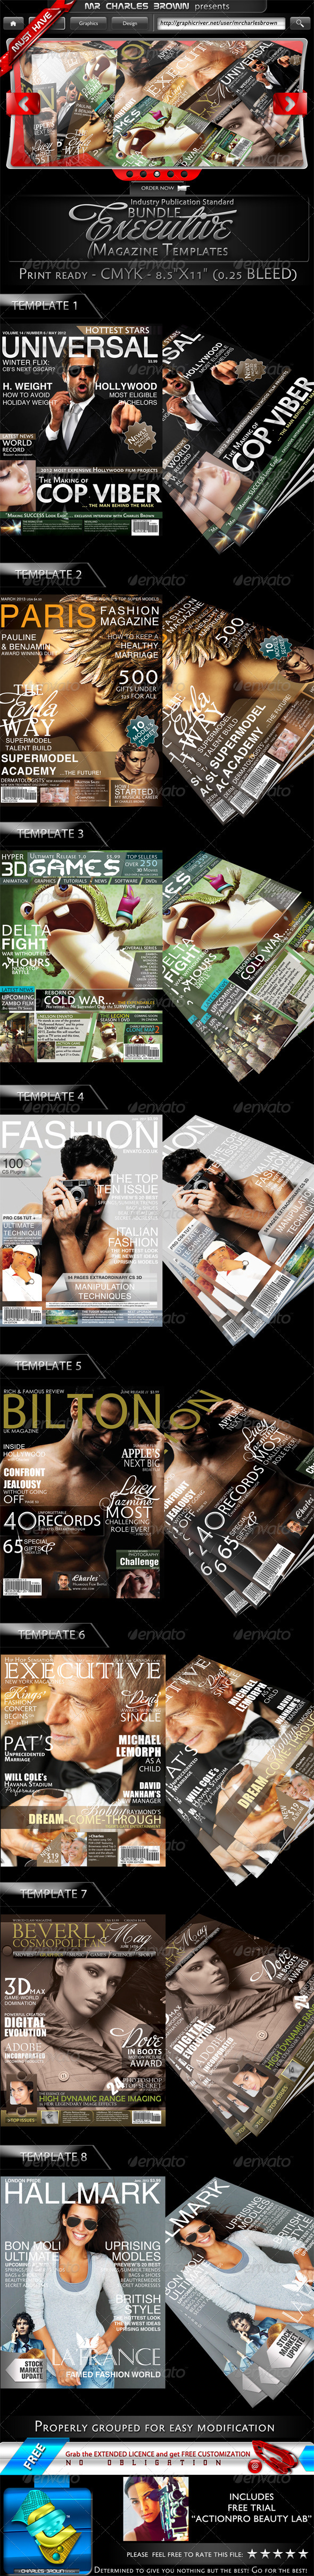 Executive Magazine Cover Templates Bundle - Magazines Print Templates